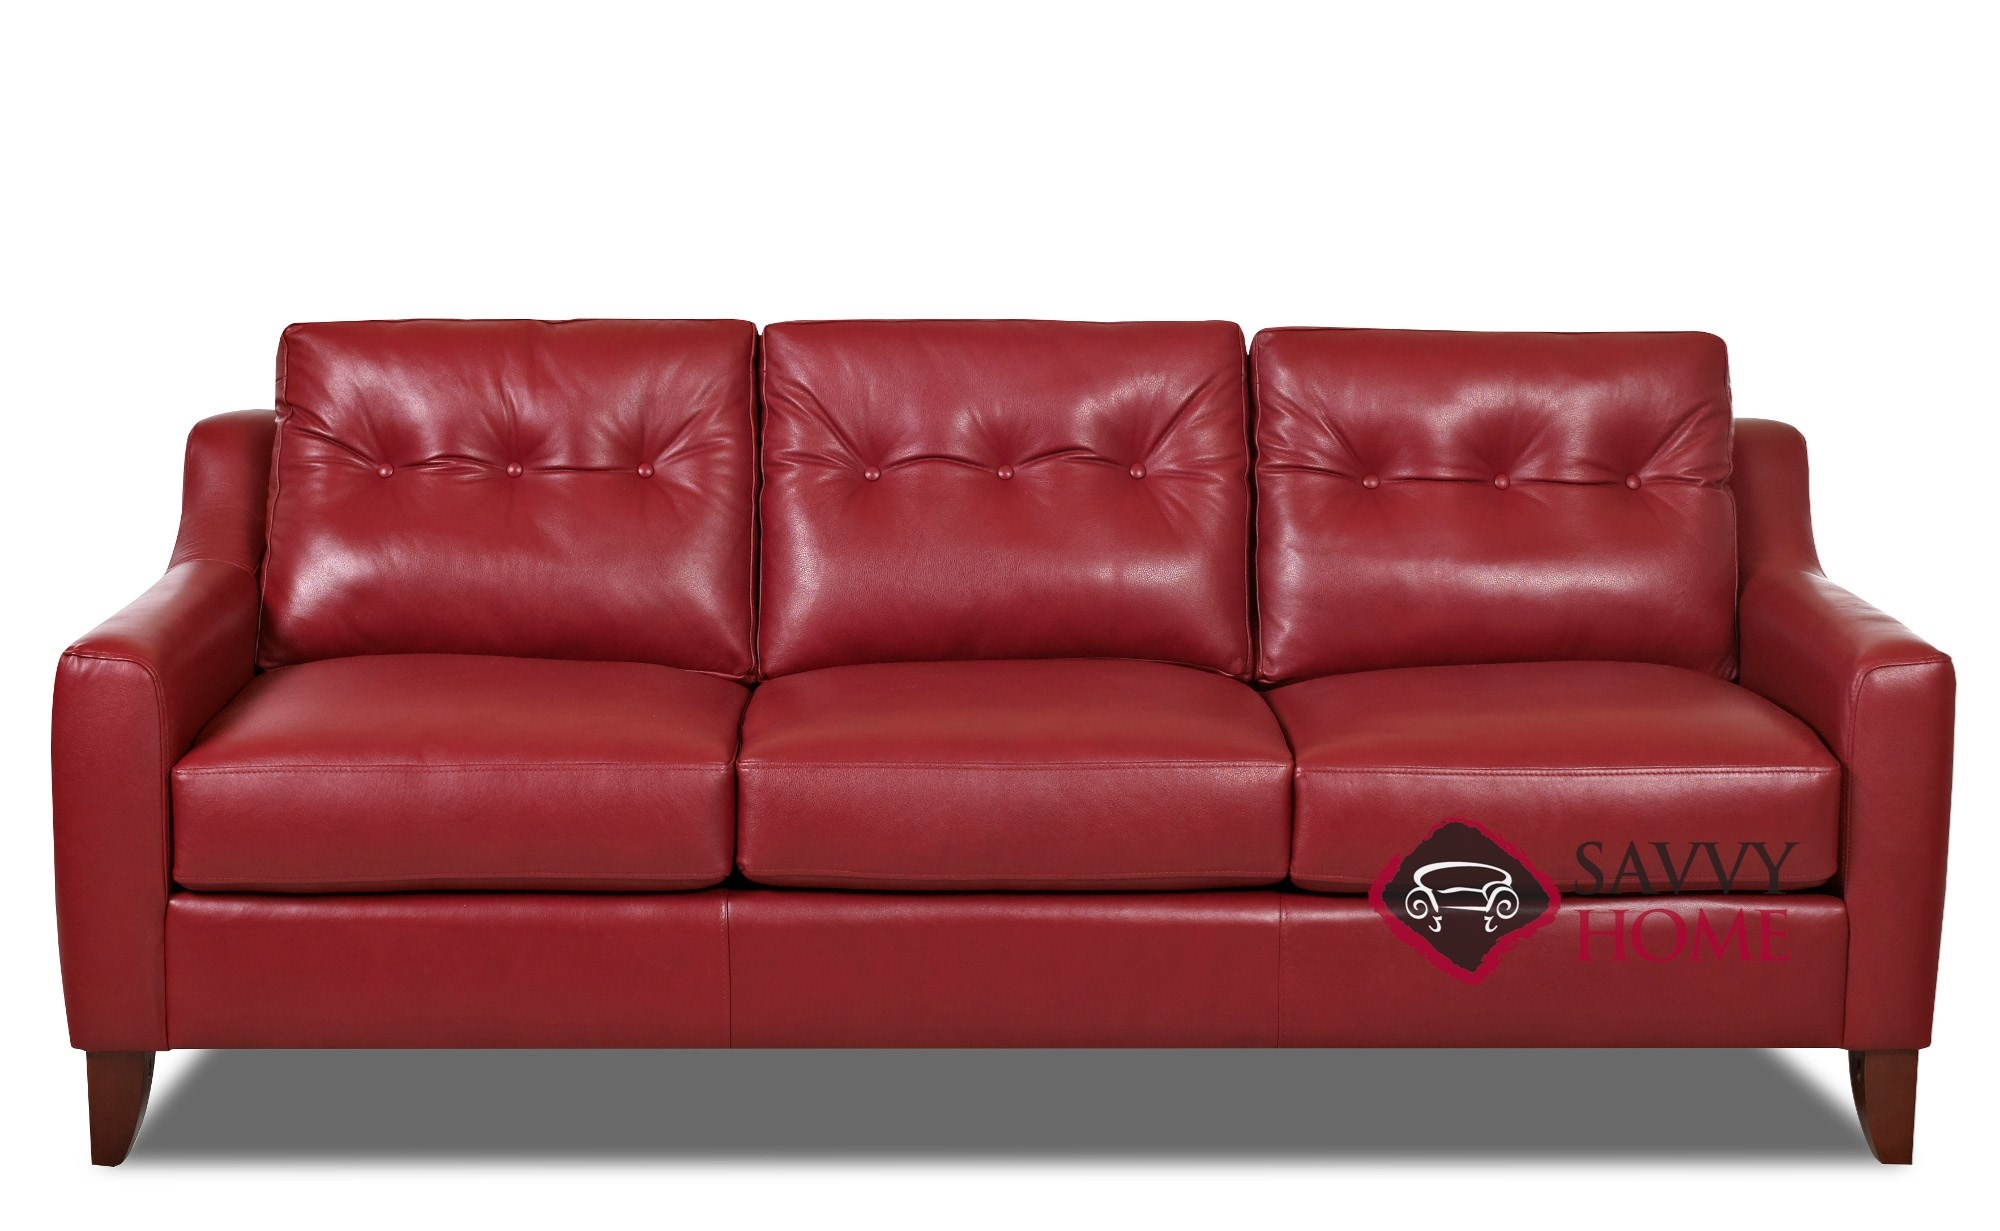 Austin Leather Stationary Sofa By Savvy Is Fully